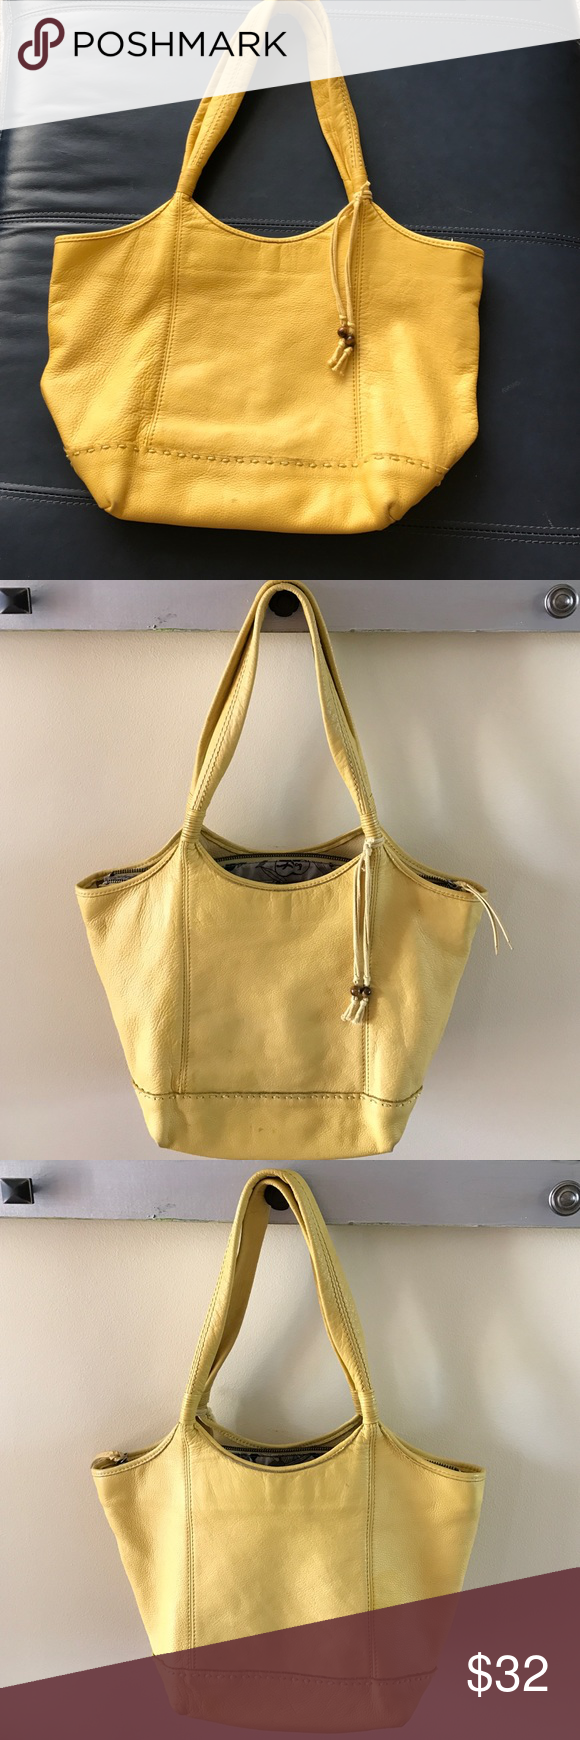 Leather purse, The Sak brand, yellow Soft leather!  Loved the size of this purse!  One main compartment with a zip closure.  It is previously loved and does show discoloration because someone spilled something on it during a night out.   It is not perfect, but makes a great shoulder bag for casual use----like the kind you don't mind putting in a grocery cart cuz it may get dirty, if ya know what I mean!  My price reflects the imperfections. The Sak Bags Shoulder Bags